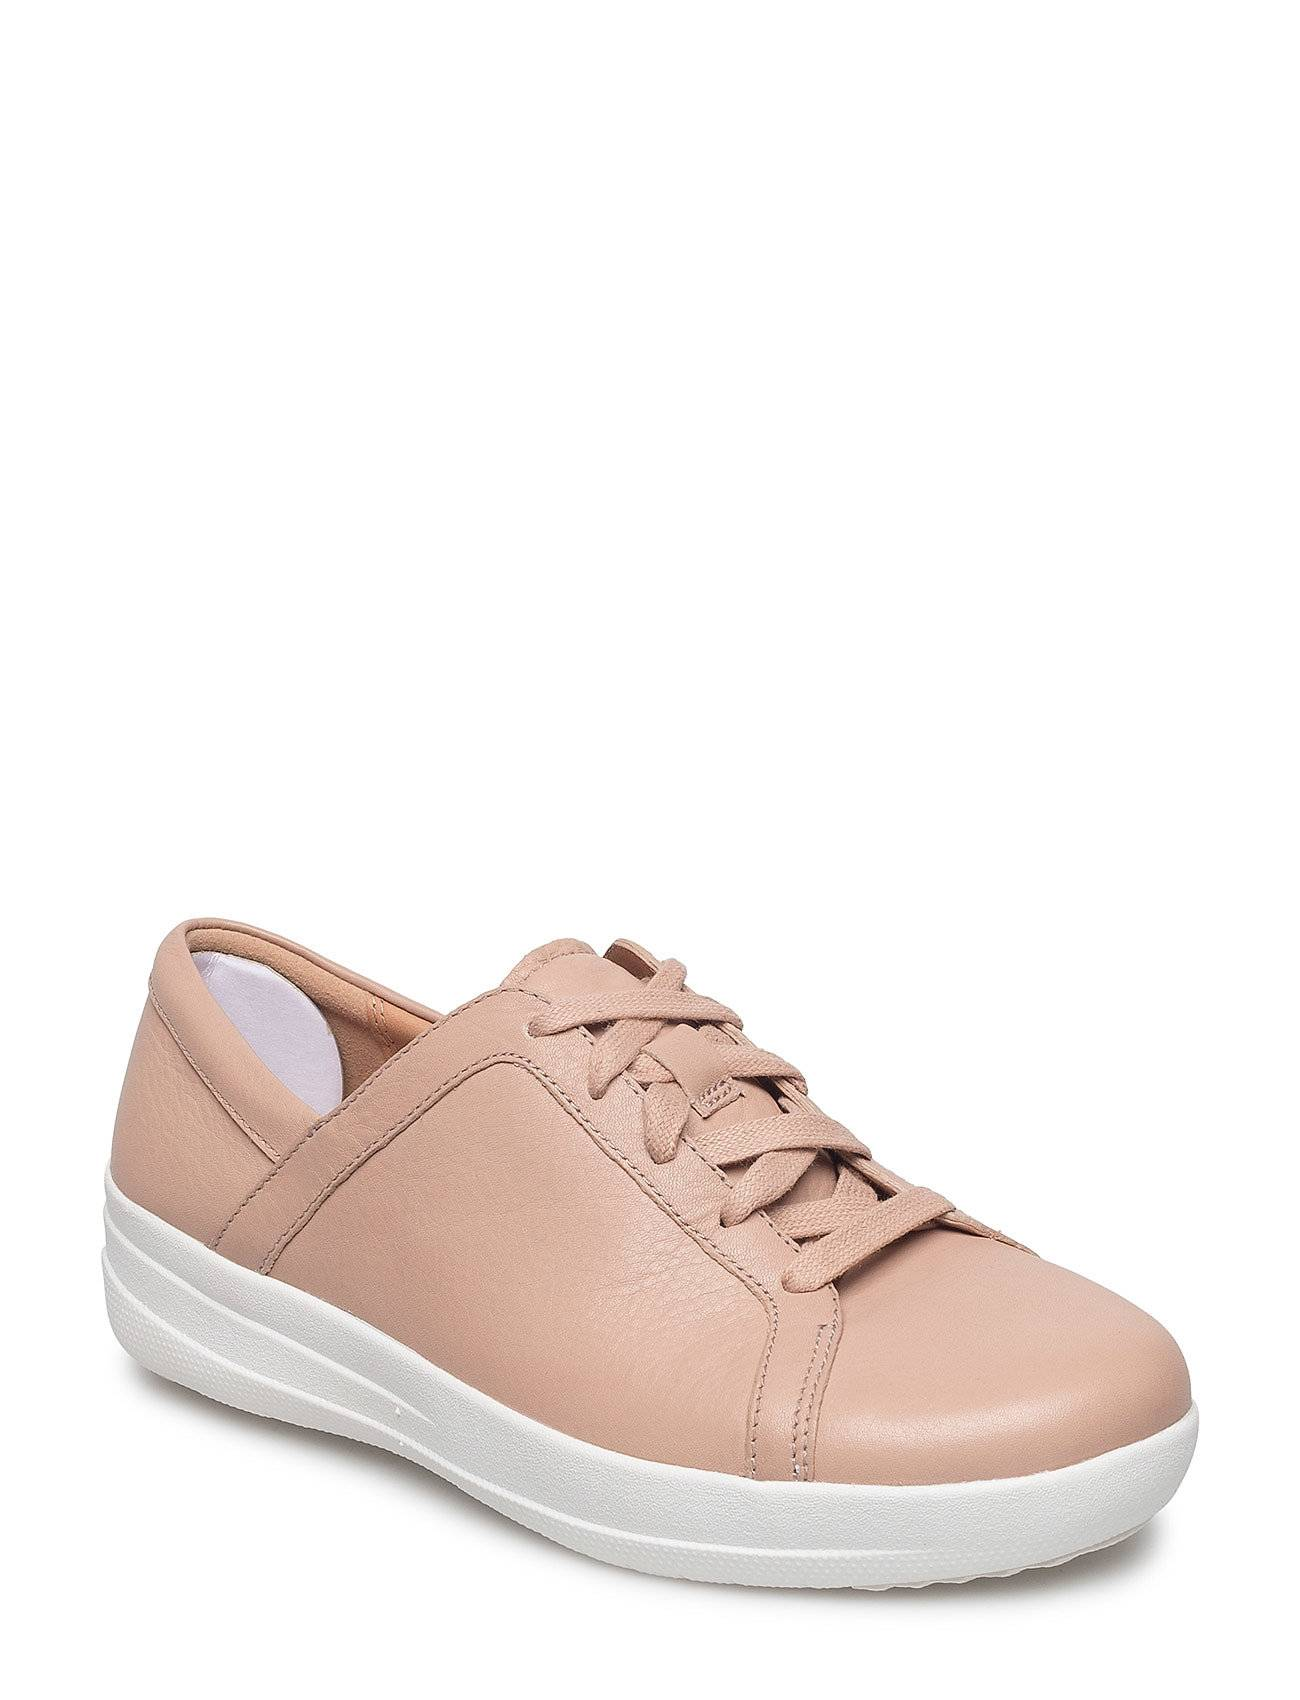 FitFlop F-Sporty Ii Lace Up